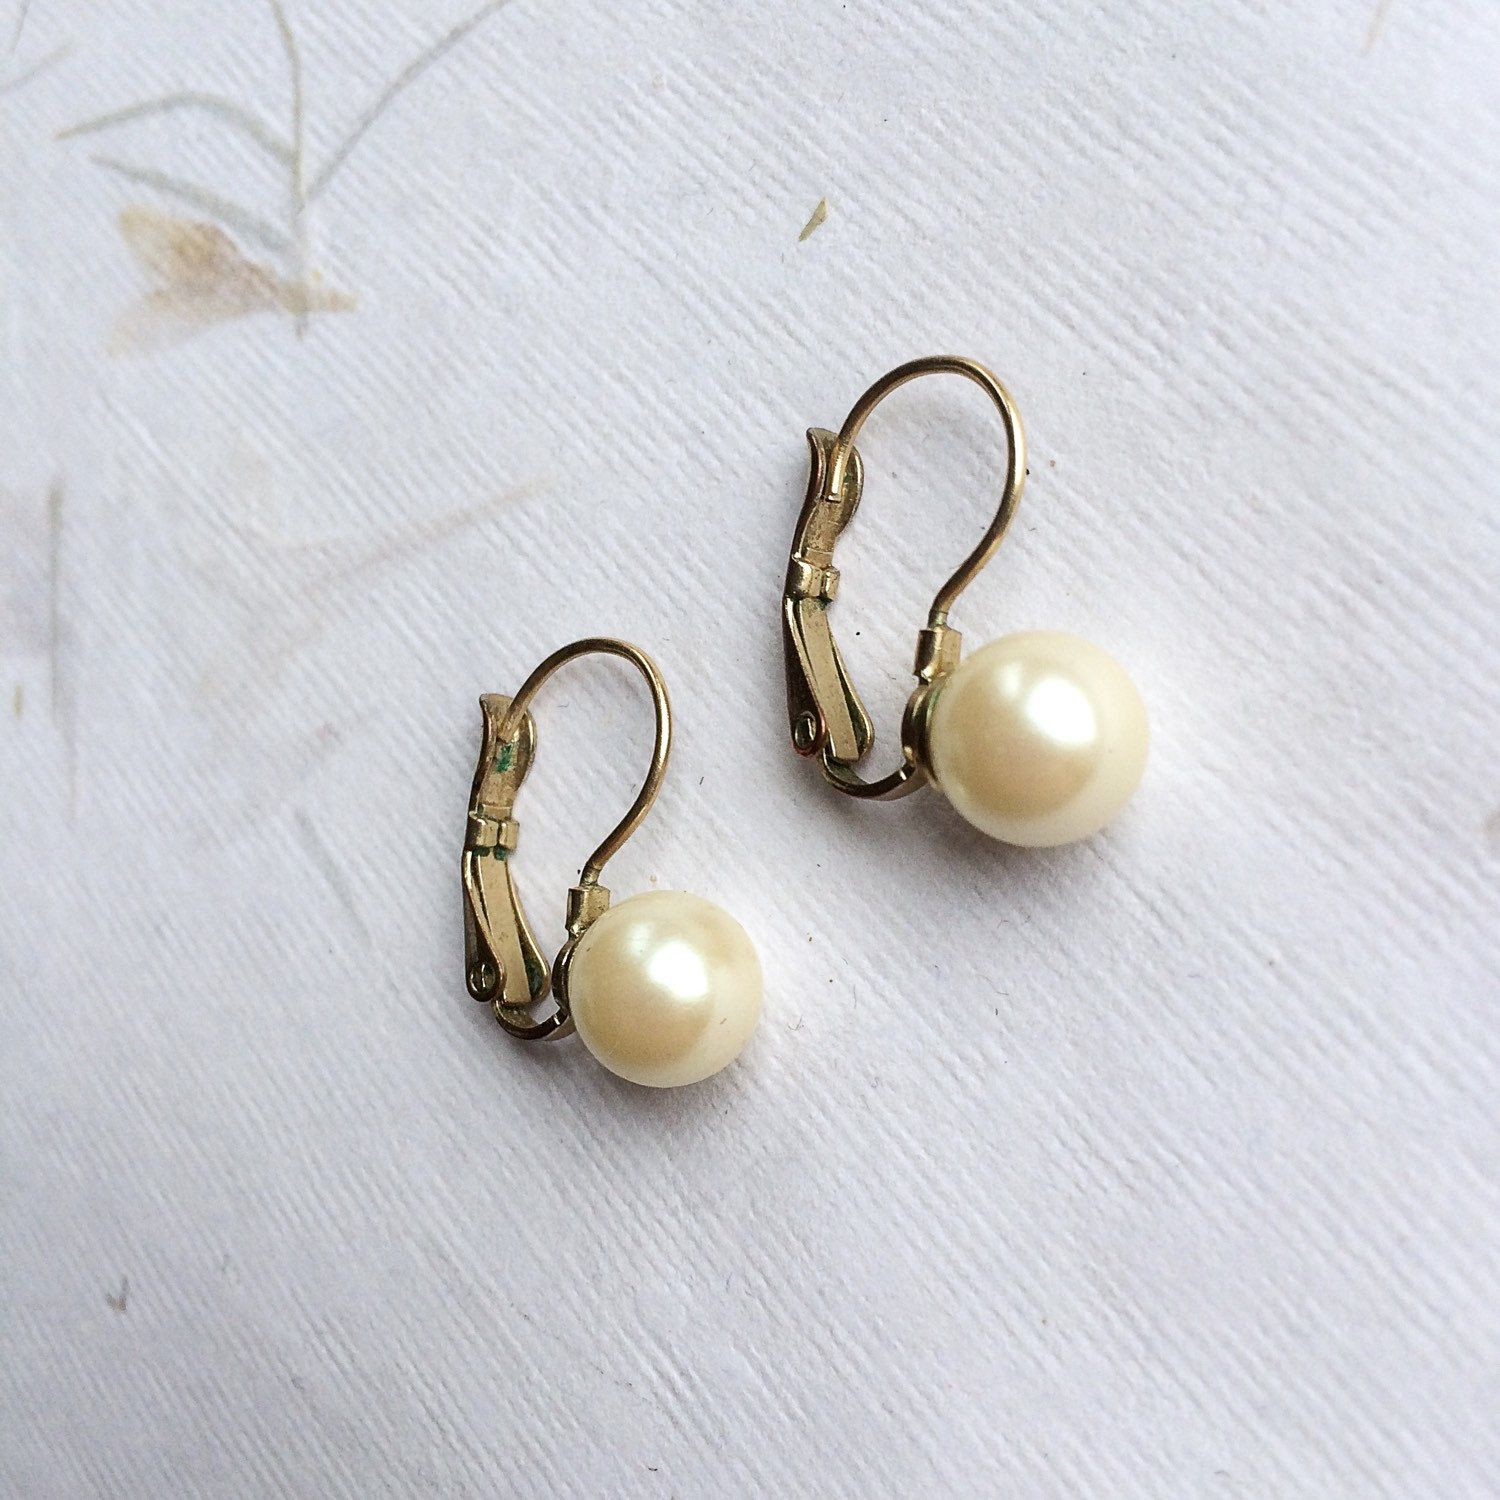 la products belljar pearl single earrings surface